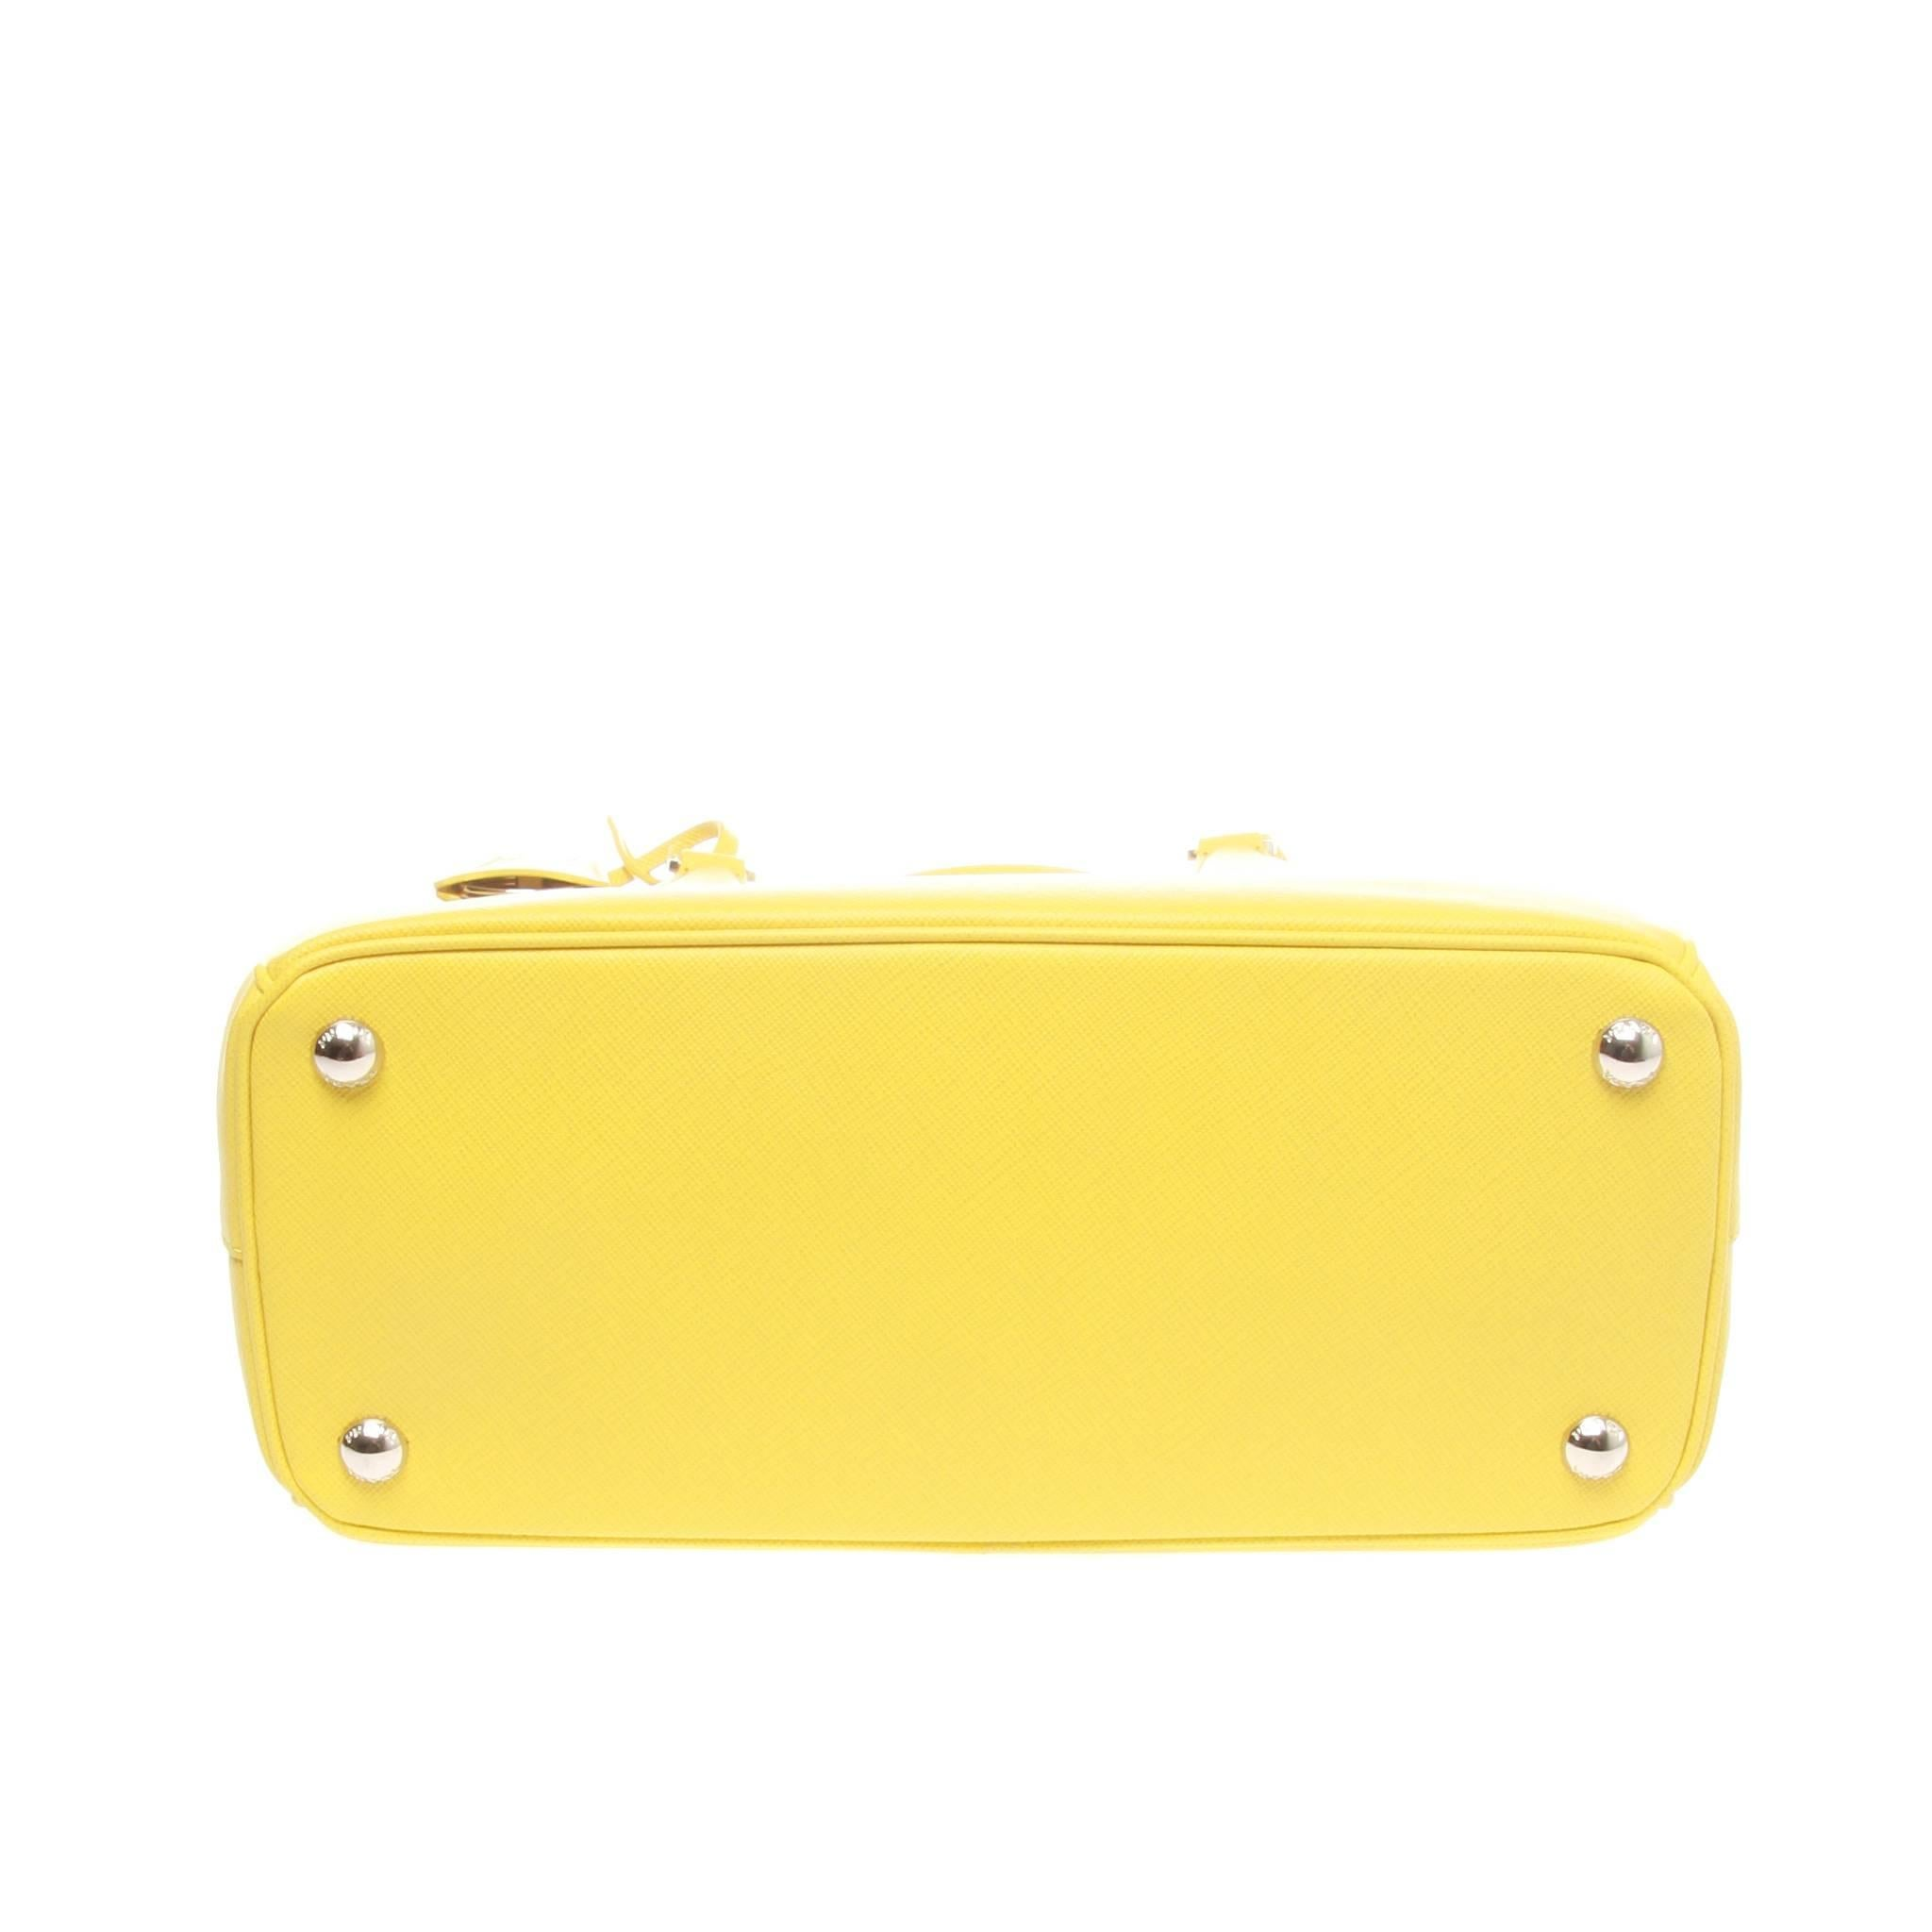 ... get womens or mens prada yellow saffiano lux galleria shopping bag for  sale b1c3a 74022 25f78432fce03